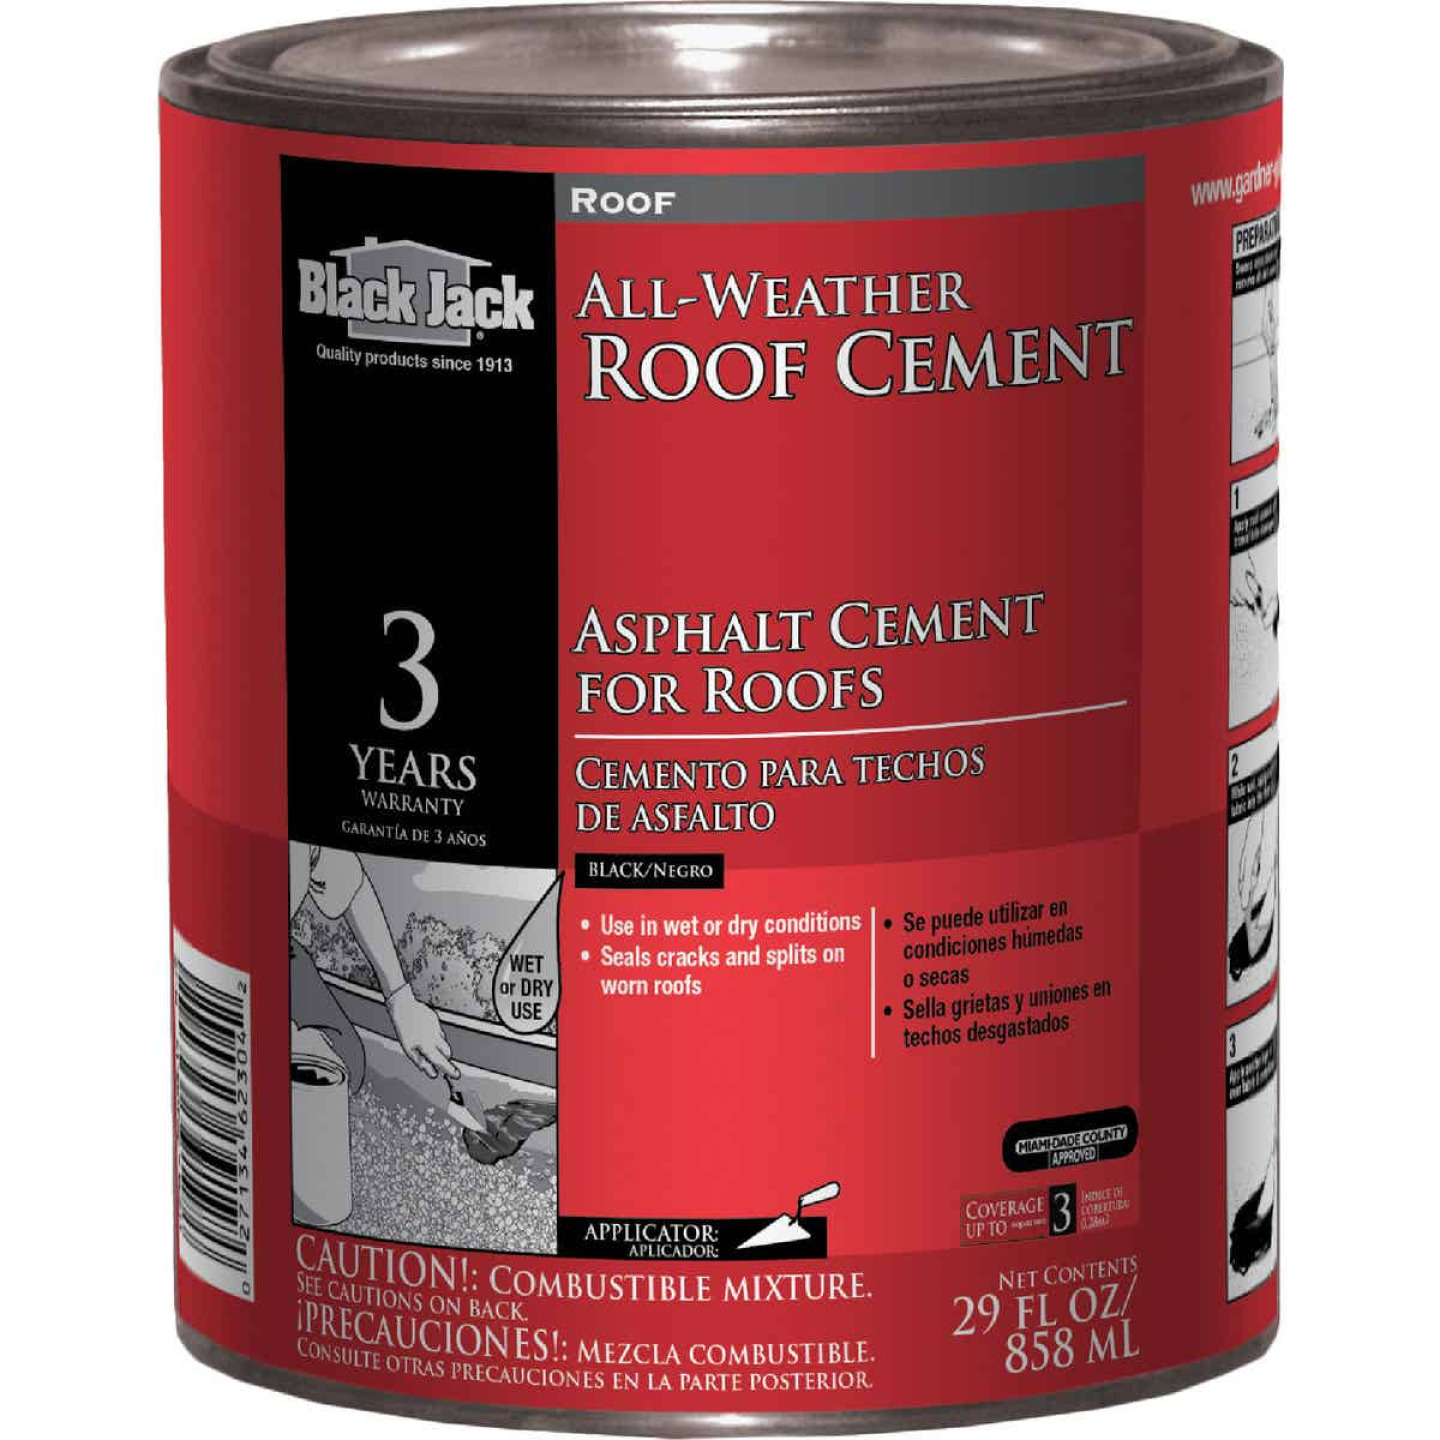 Black Jack 1 Qt. All-Weather Roof Cement Image 1